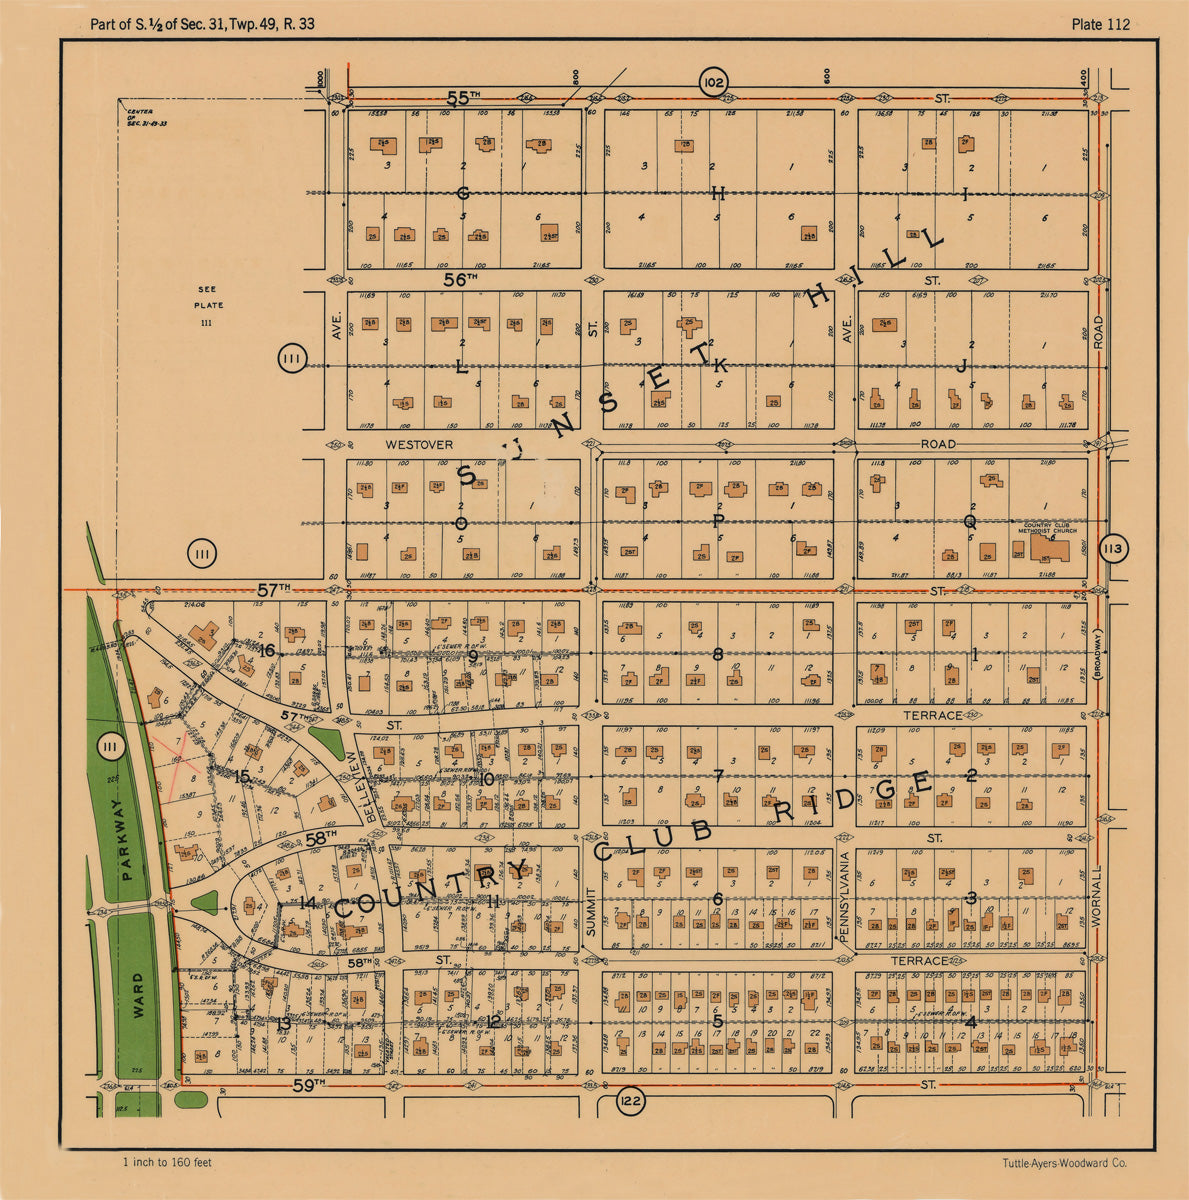 Kansas City 1925 Neighborhood Map - Plate #112 55th-59th Ward Pkwy-Wornall